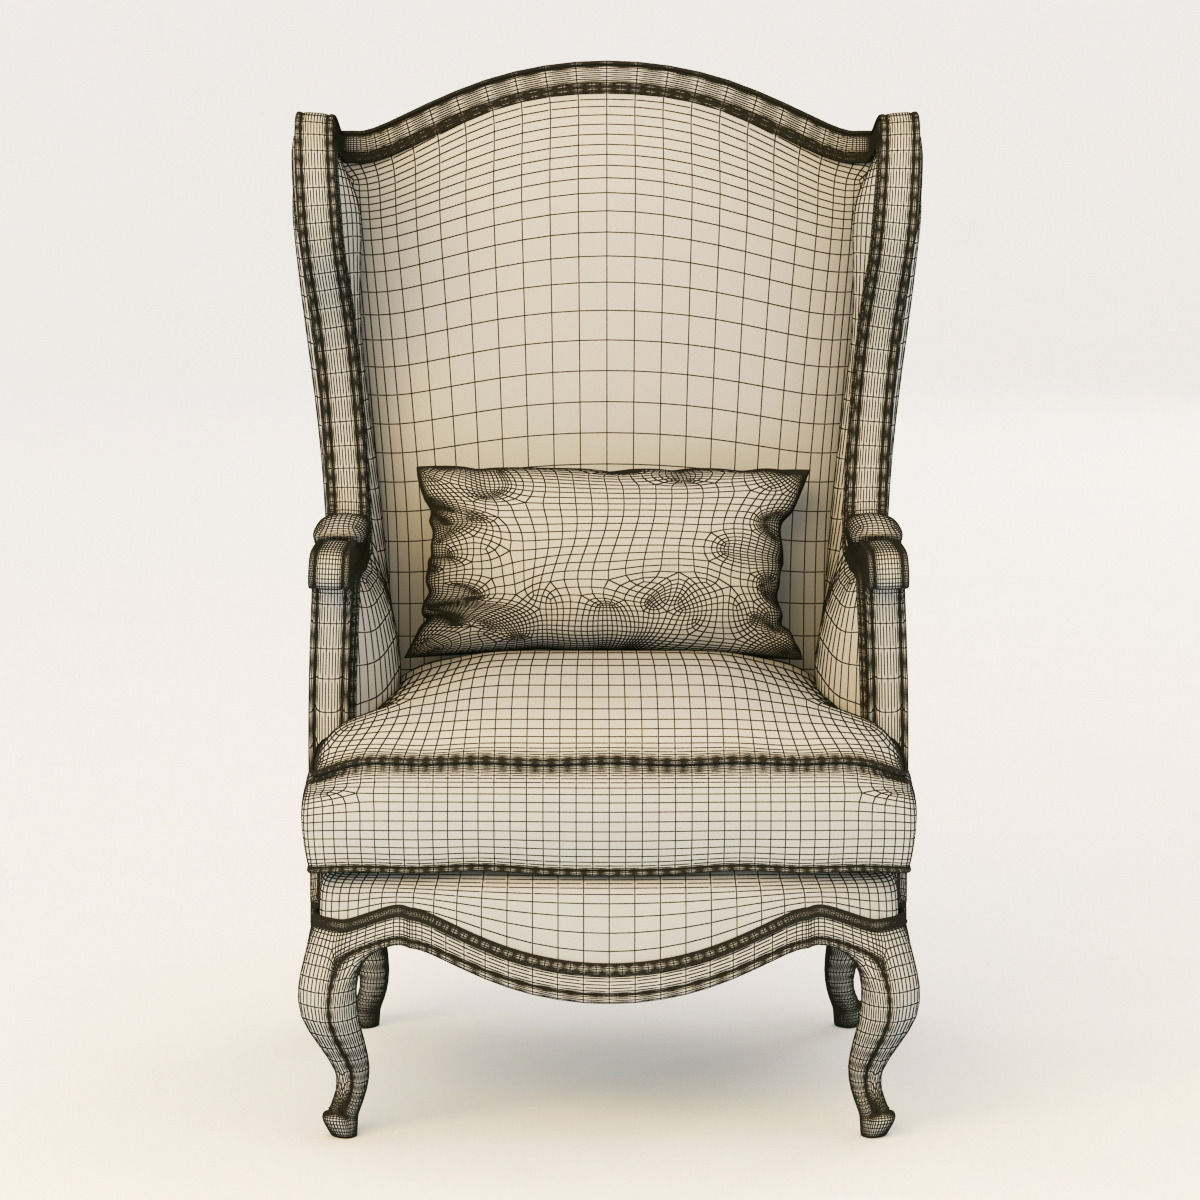 Country corner chateau armchair 3d model max obj fbx for The country corner